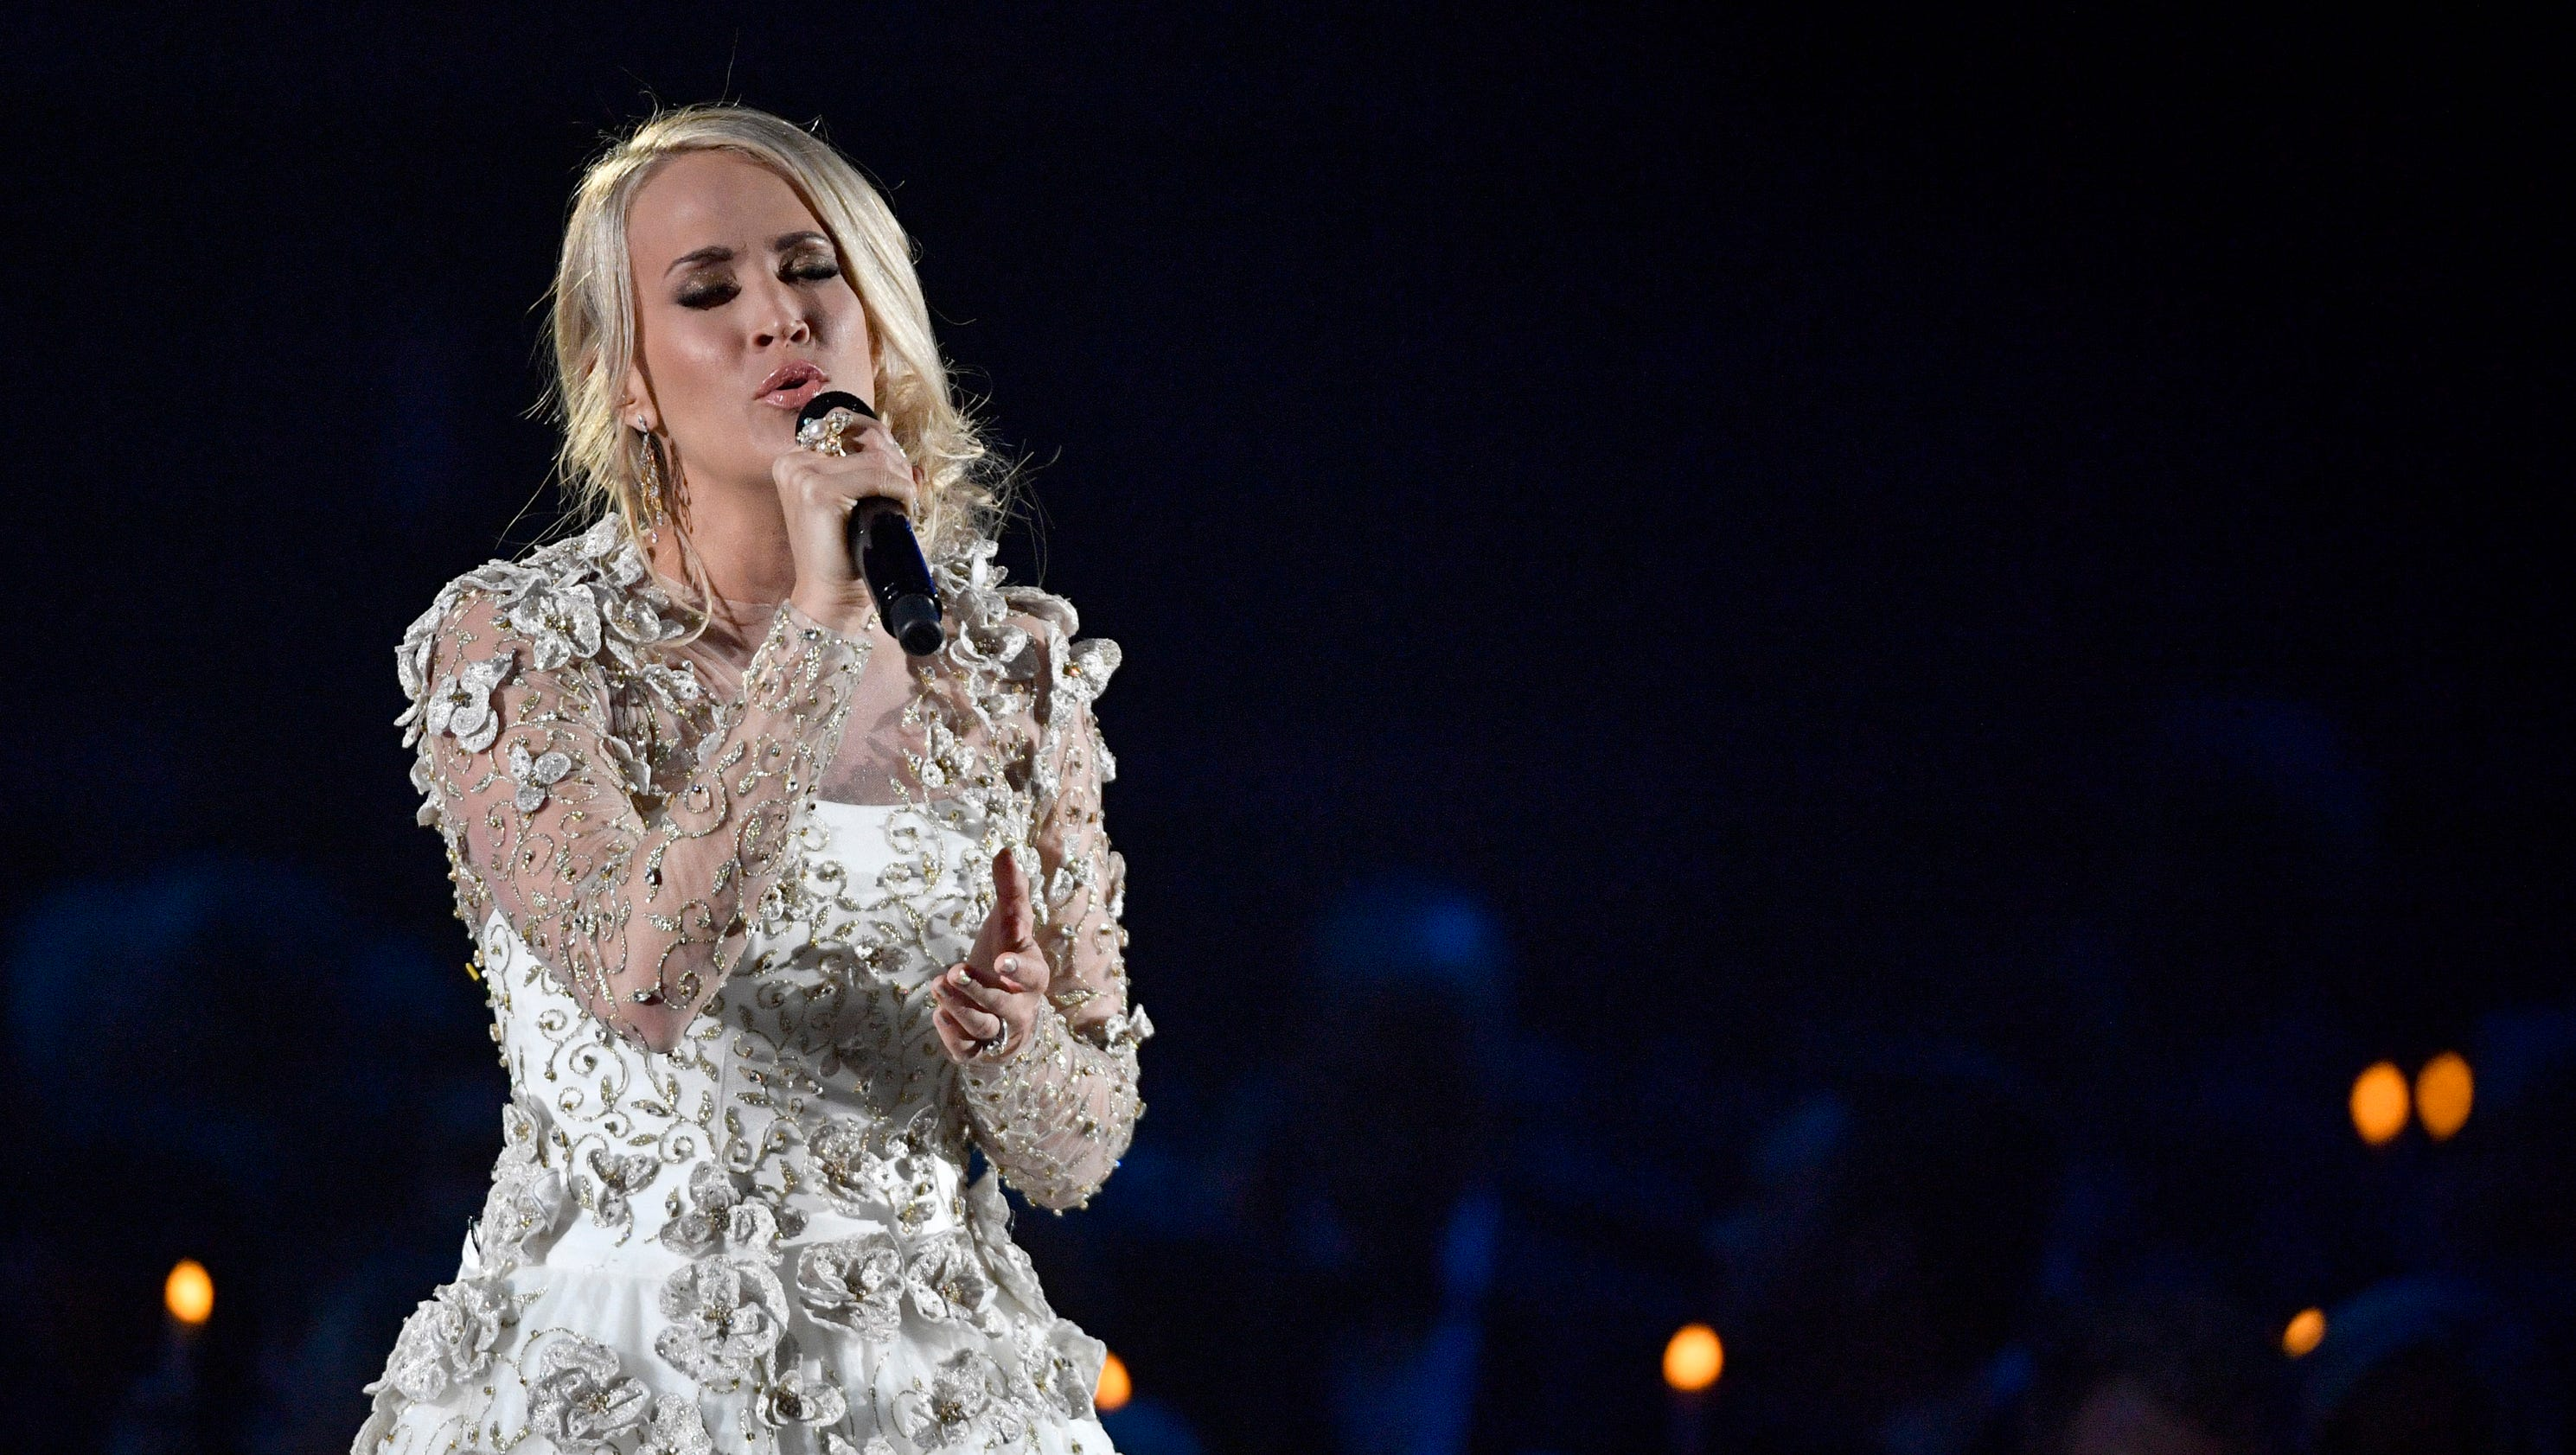 Carrie underwood injured in fall at home Carrie underwood softly and tenderly